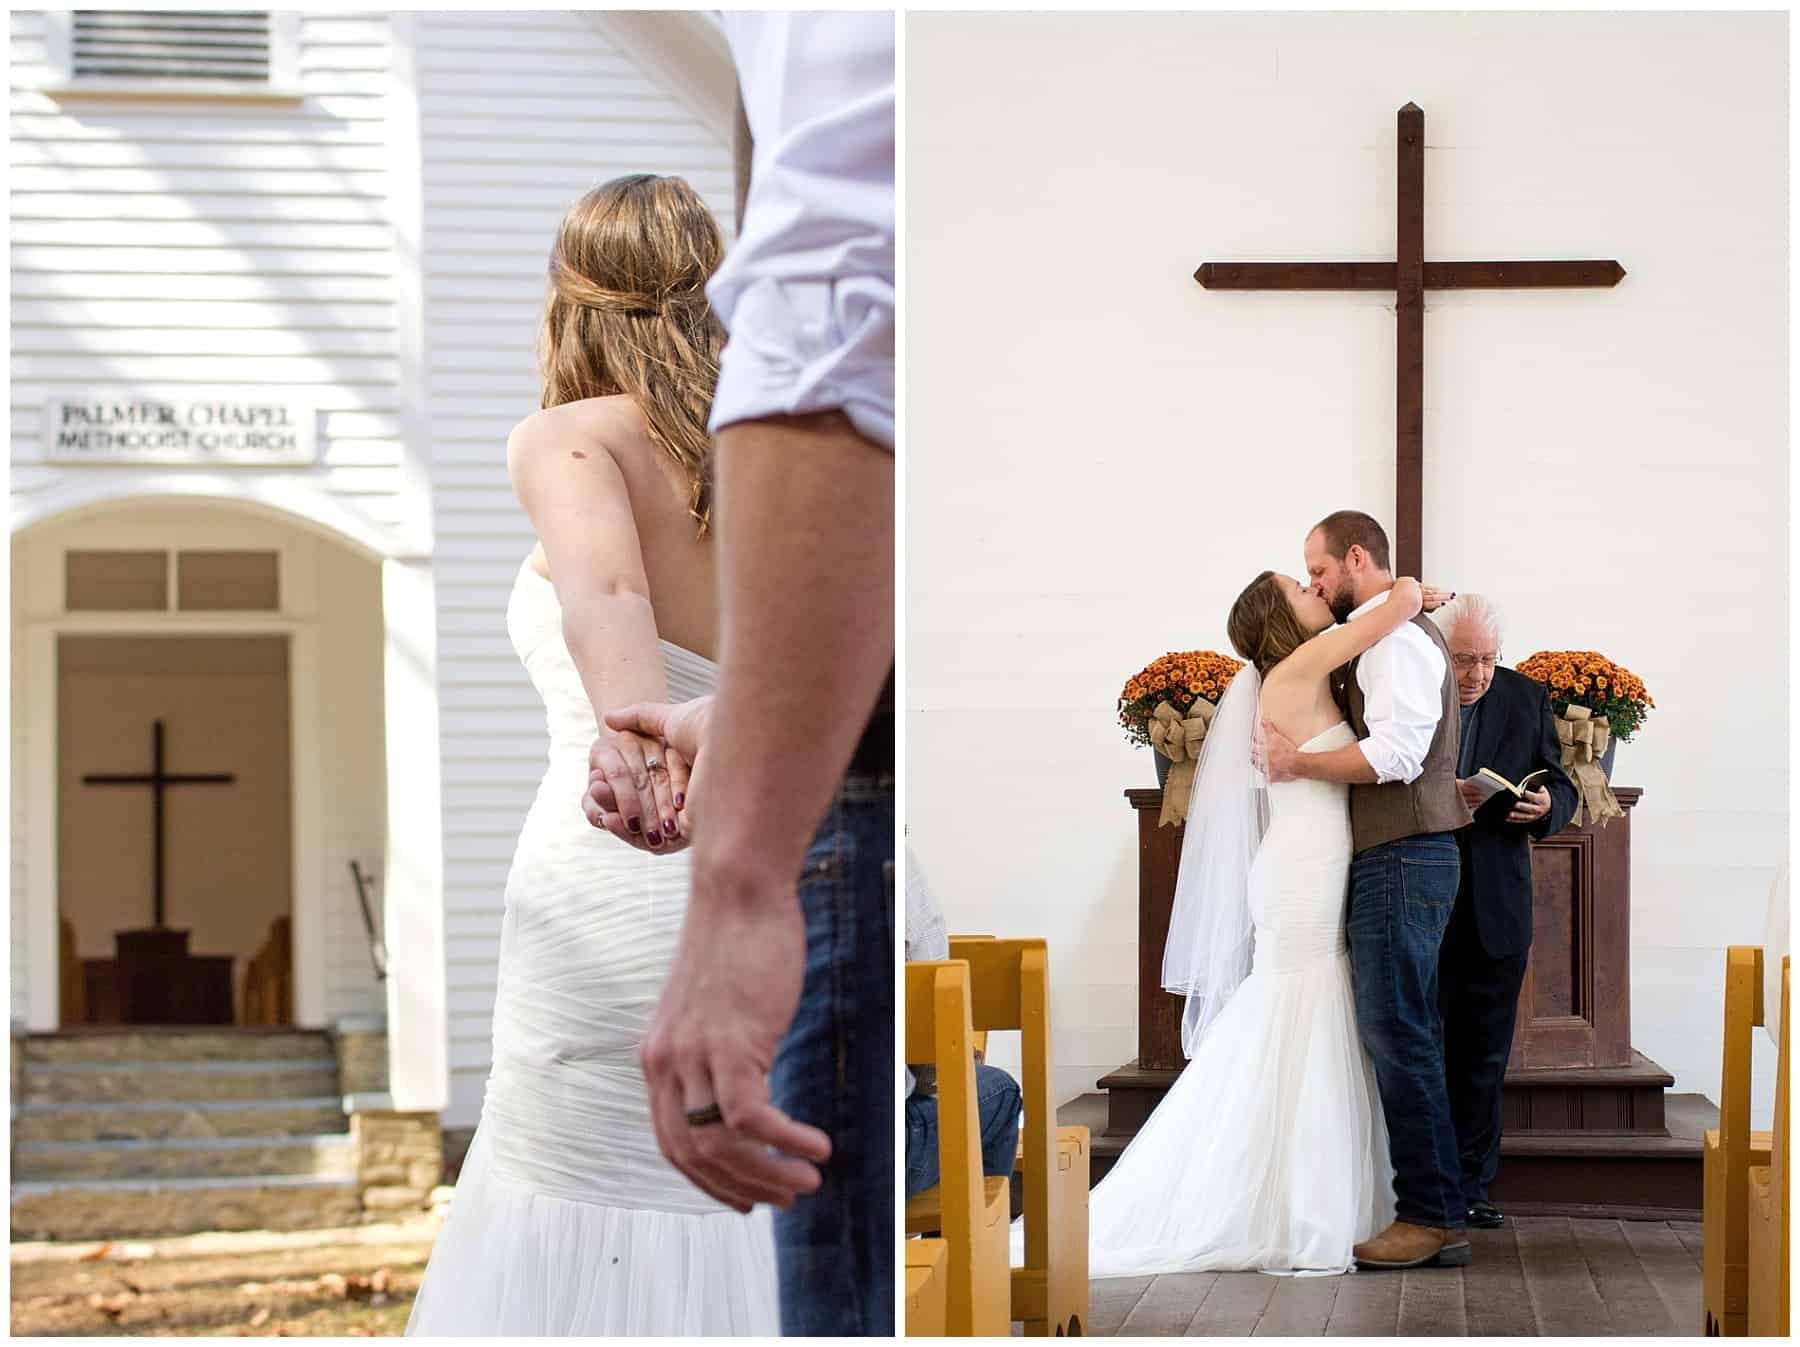 Cataloochee Valley Weddings and Engagements by Victoria Grace Photography | Visit NC Smokies